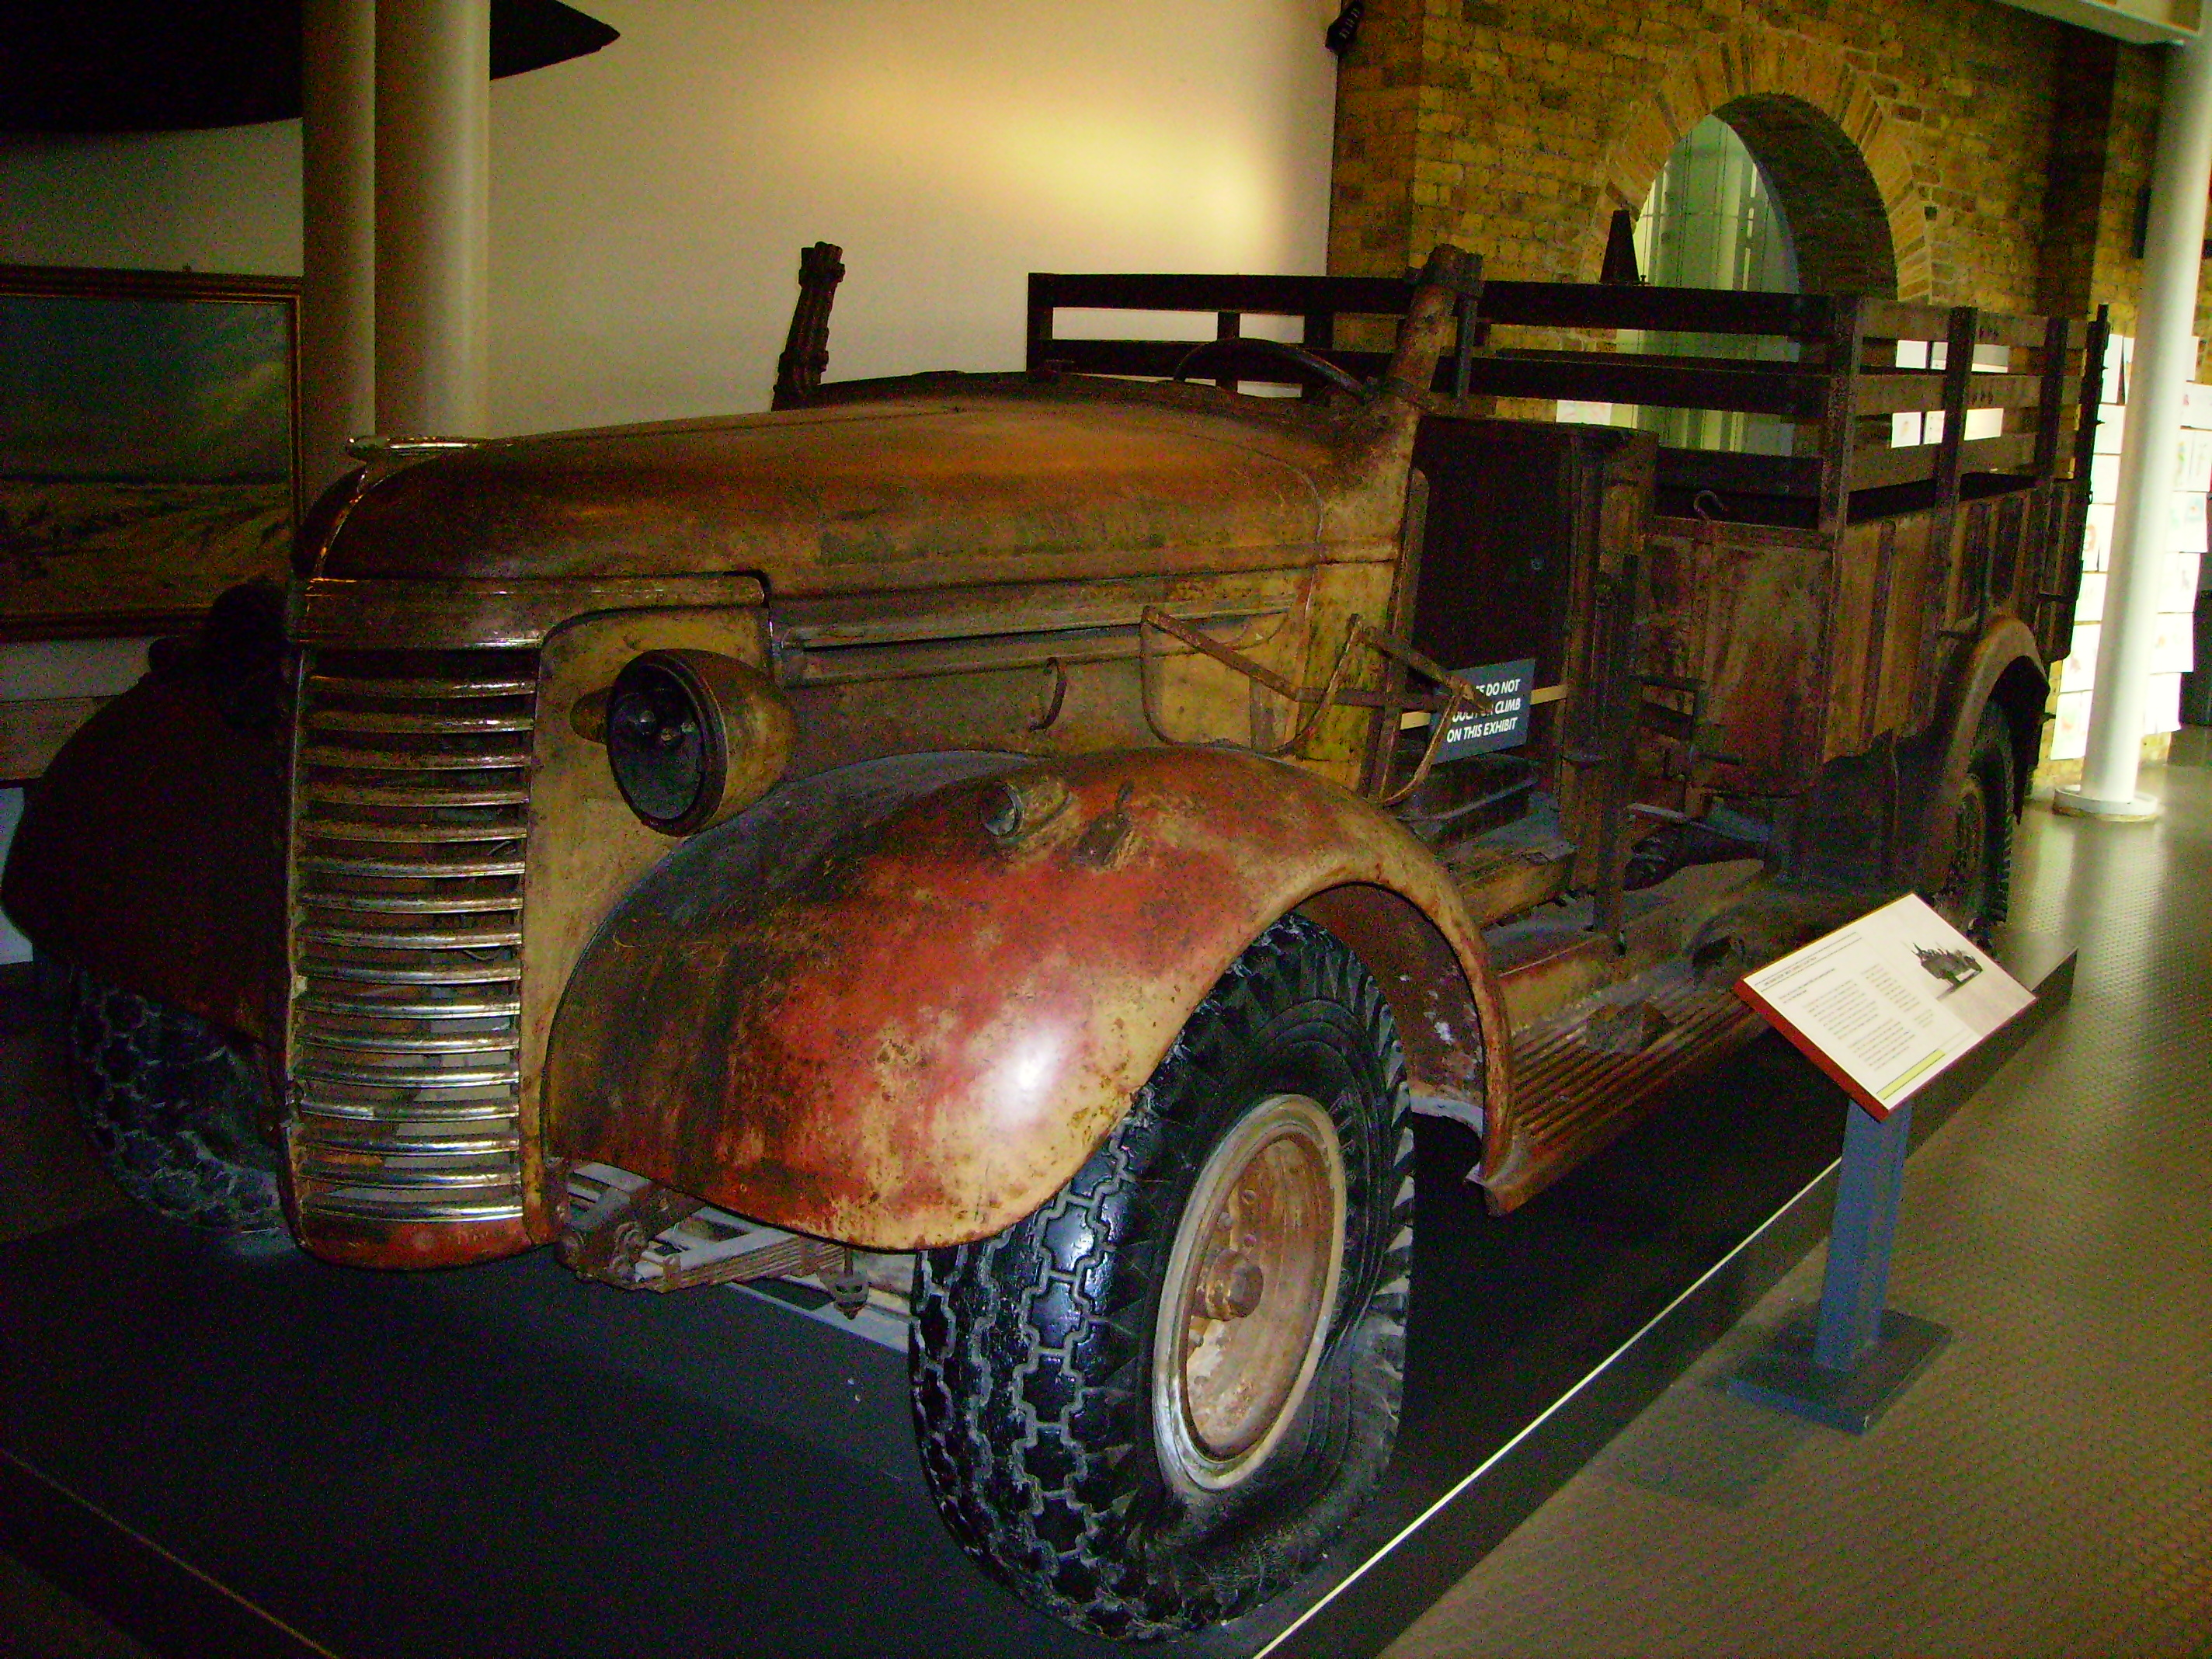 A three-quarter view of a small, four-wheel truck, it has some rust but it largely intact